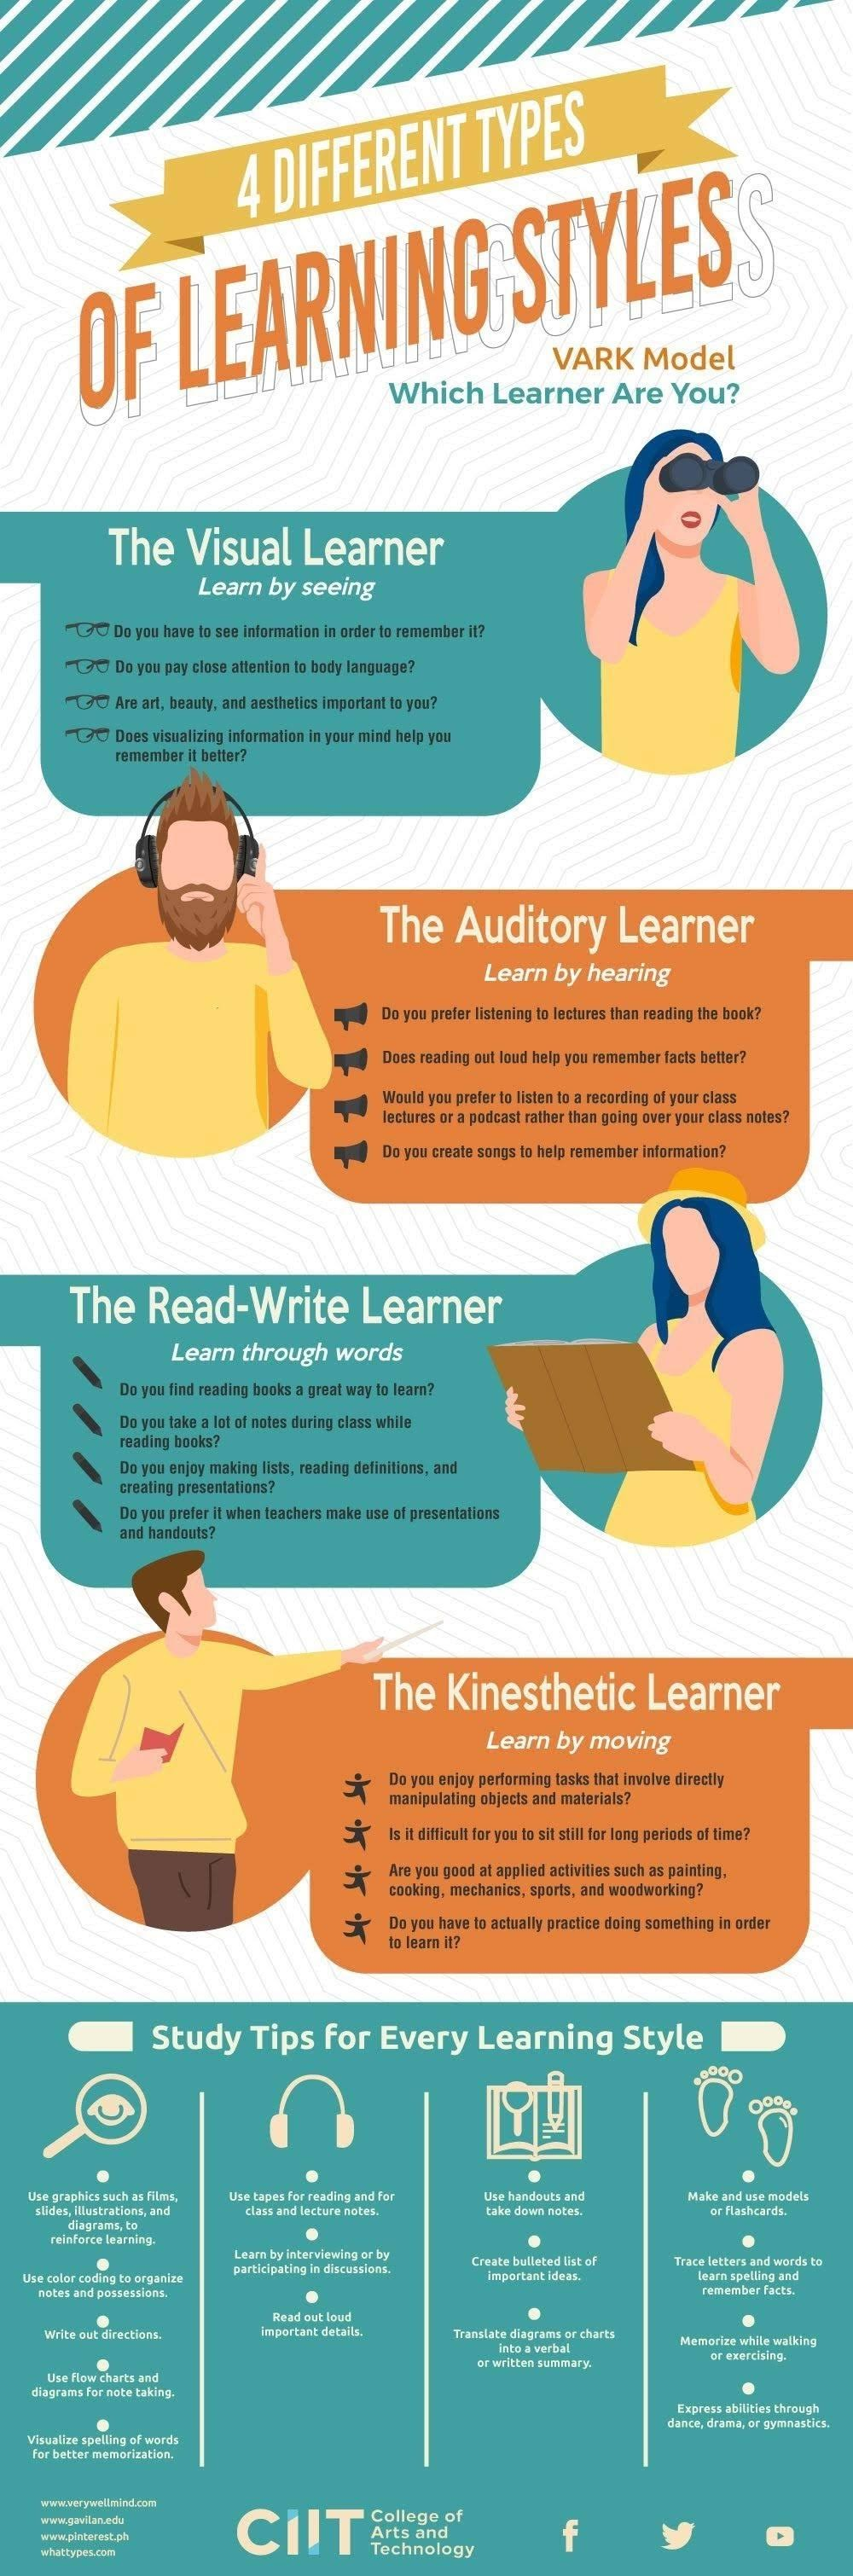 How to Survive High School Life Based on Different Types of Learning Styles #infographic